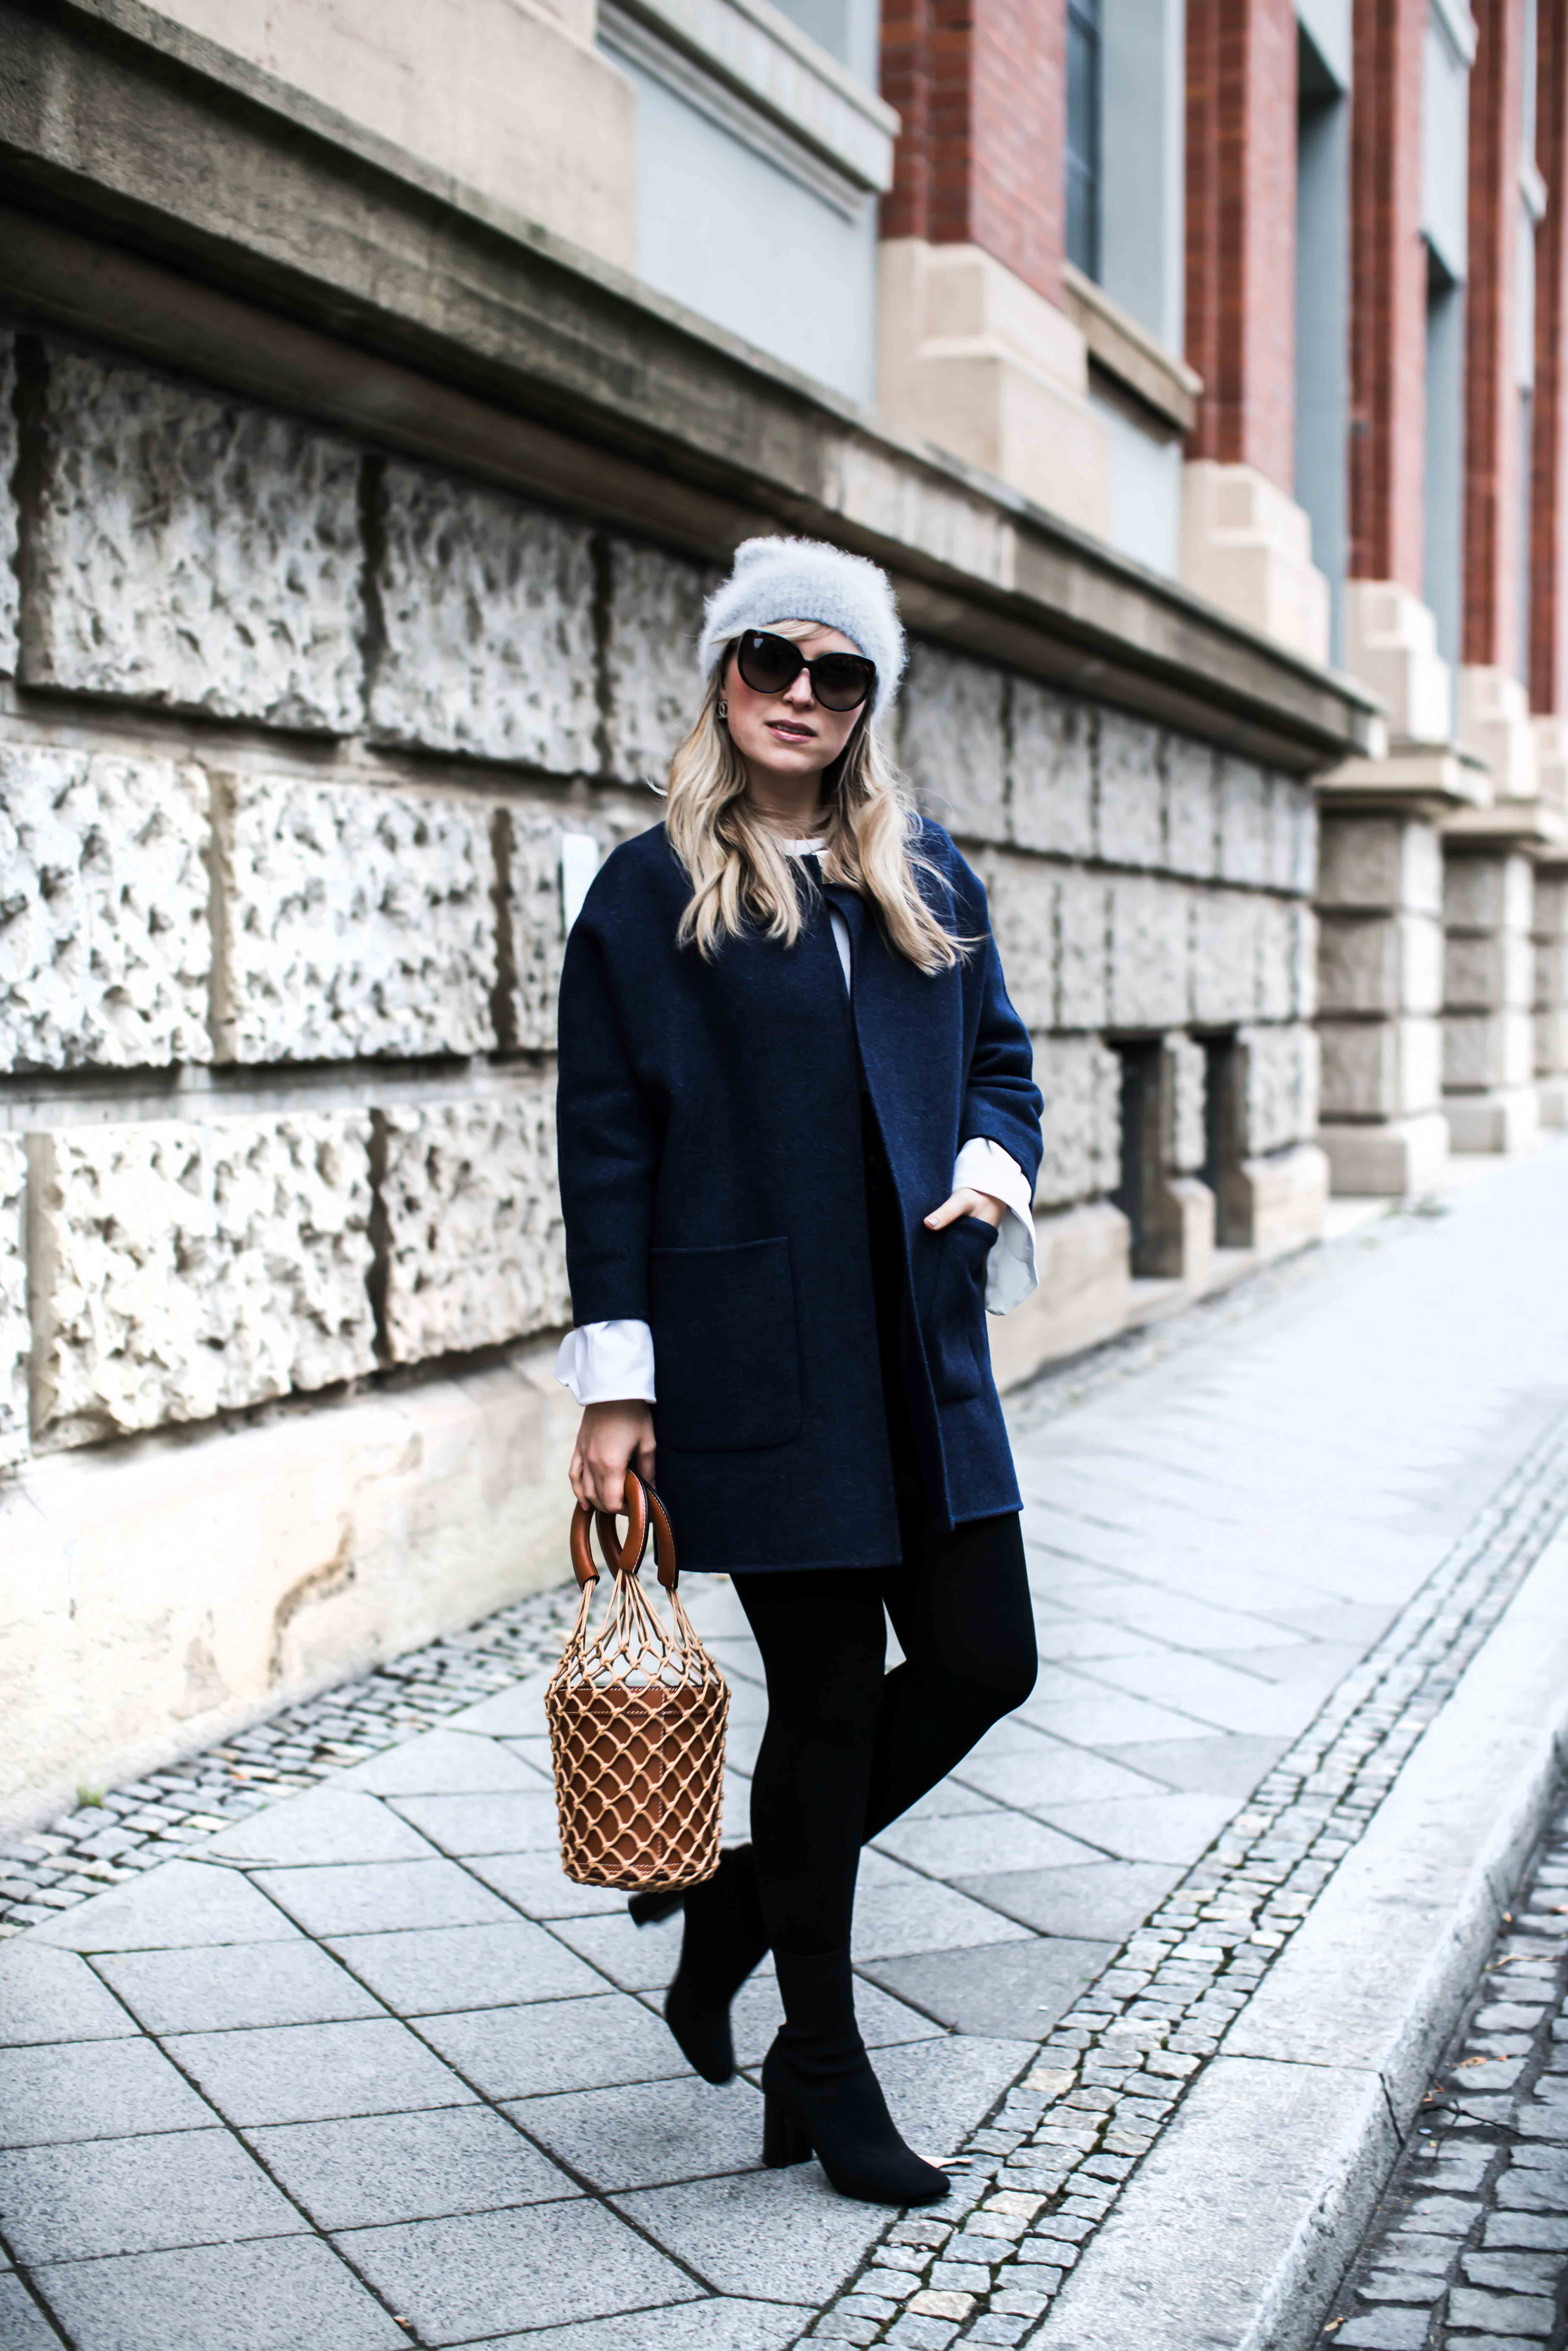 wearing my fave coat and staud bag- und finde dich bitte selbst